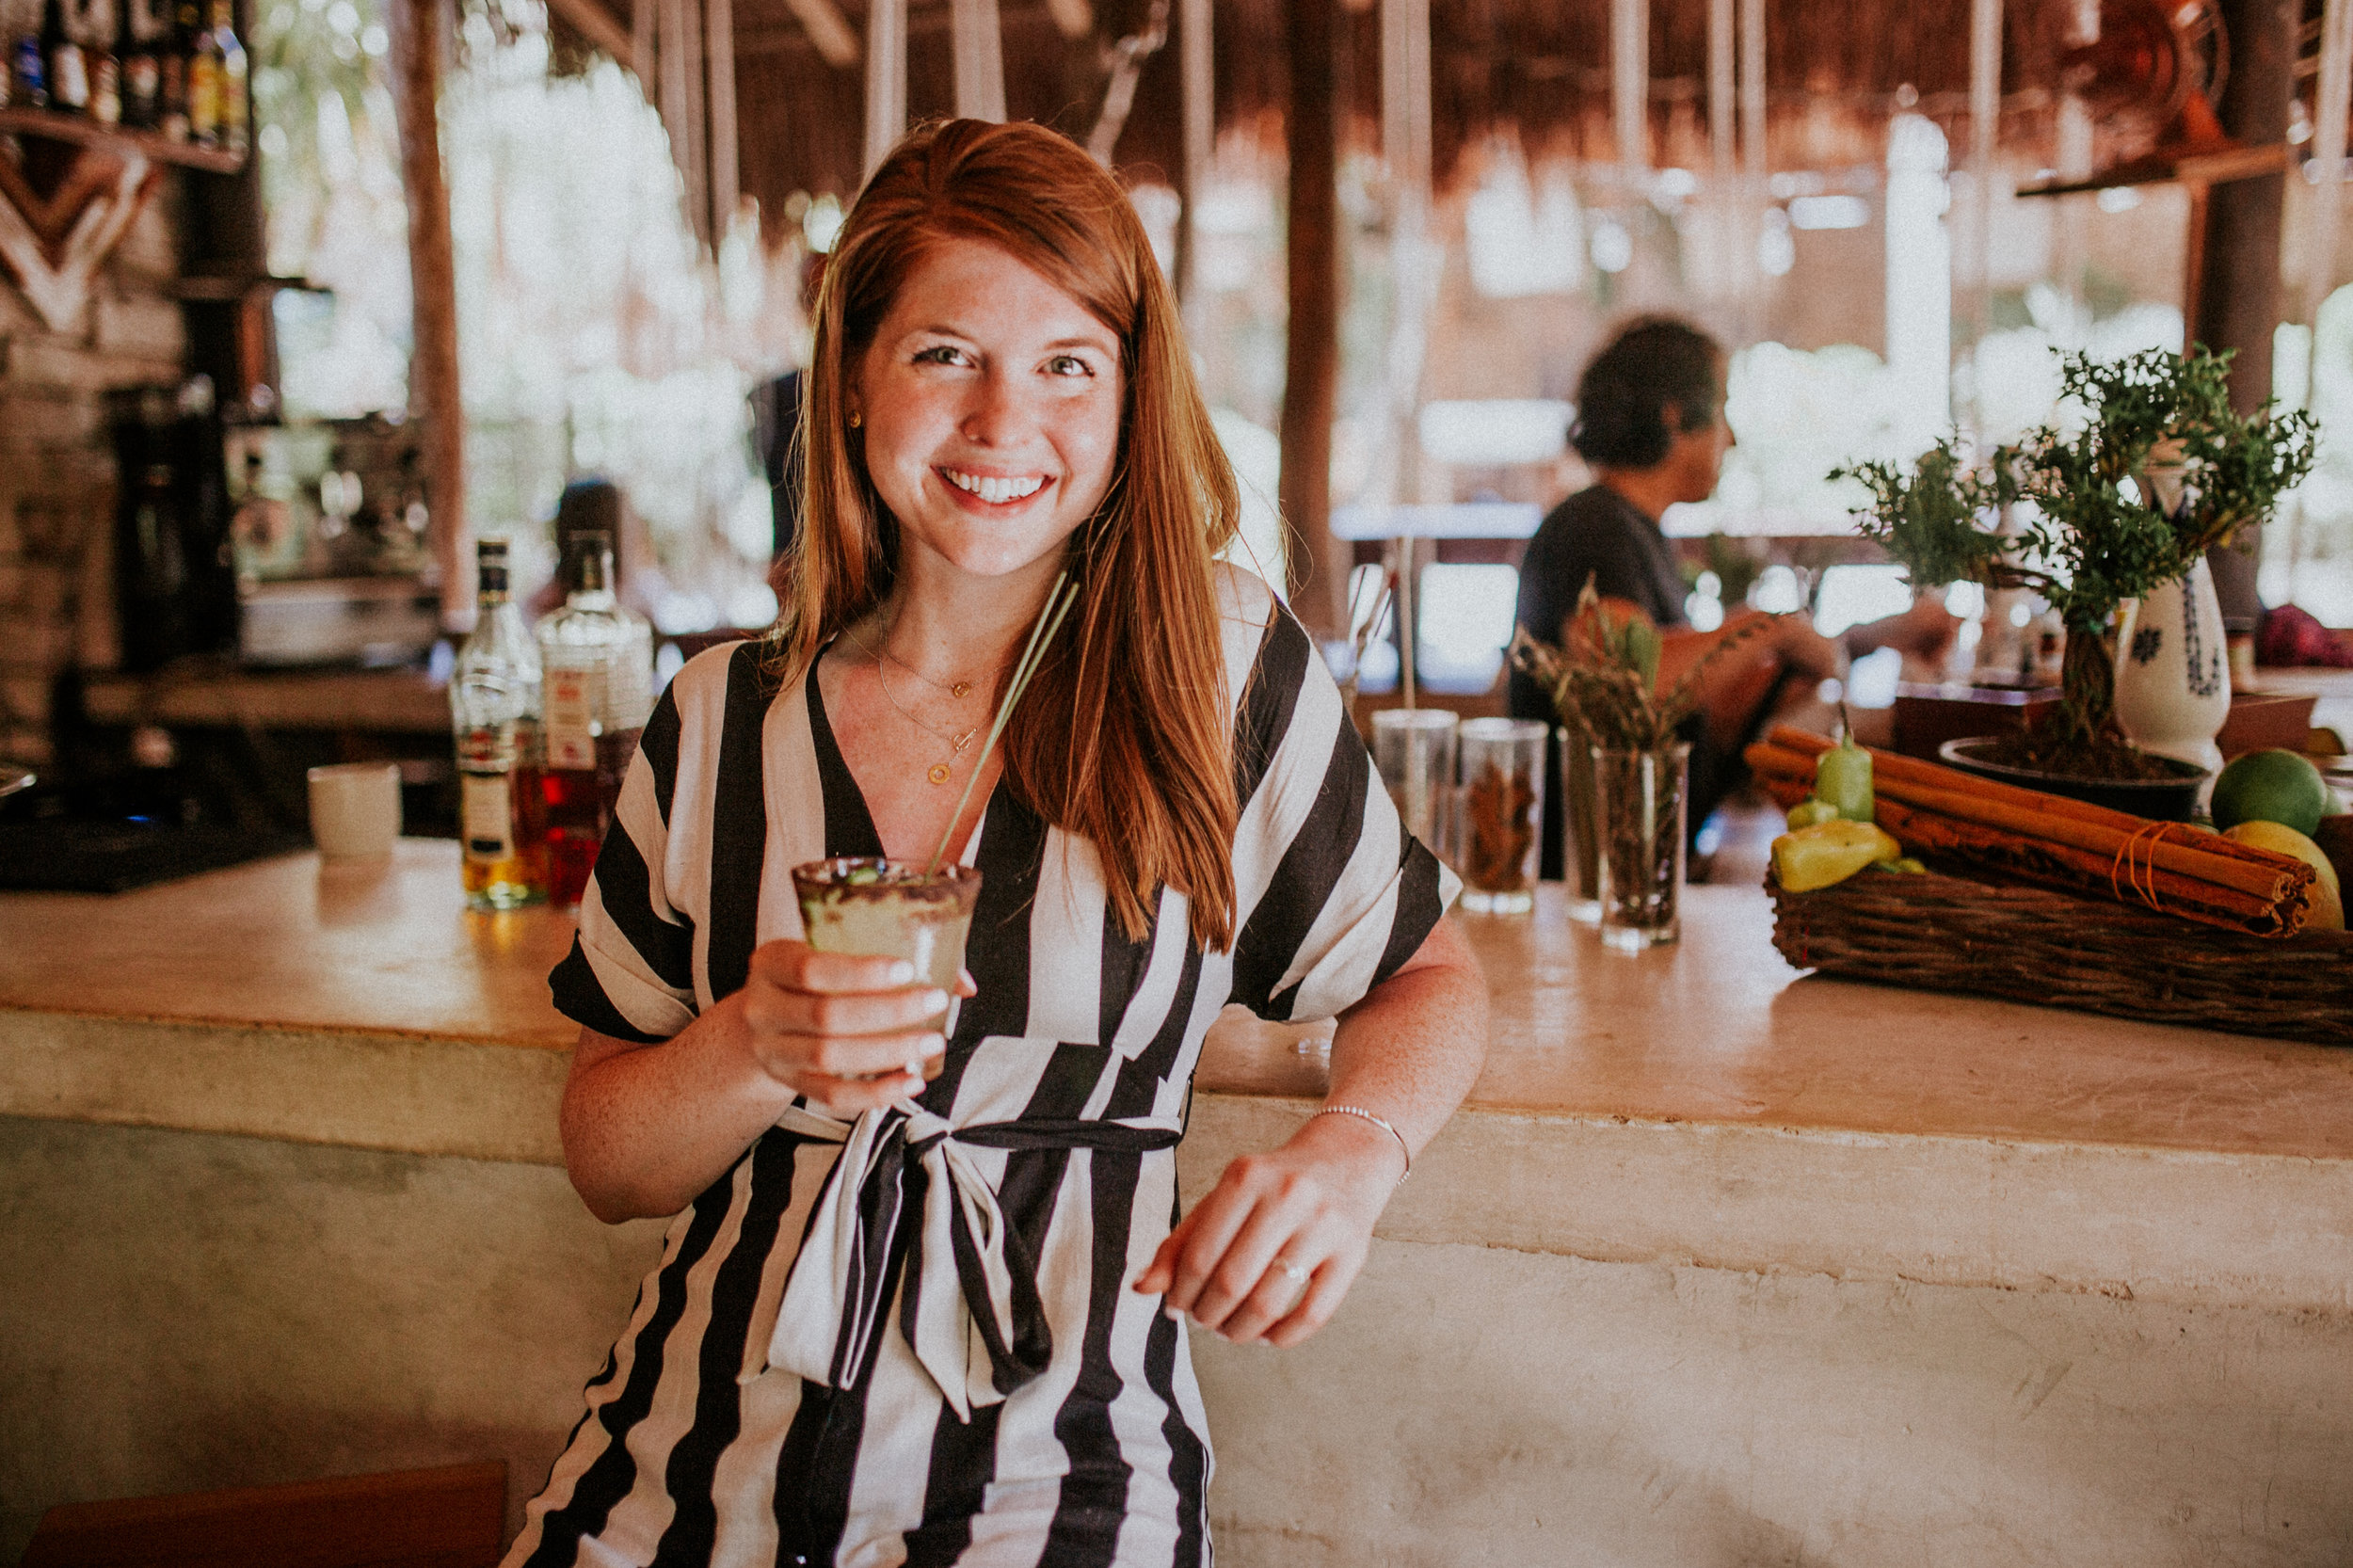 travel guide: less than 24 hours in tulum, what to do in tulum, where to eat in tulum, quintana roo, mexico, spicy margarita, mur mur, beatatum photography, destination wedding photographer, lments of style, travel blogger, cancun